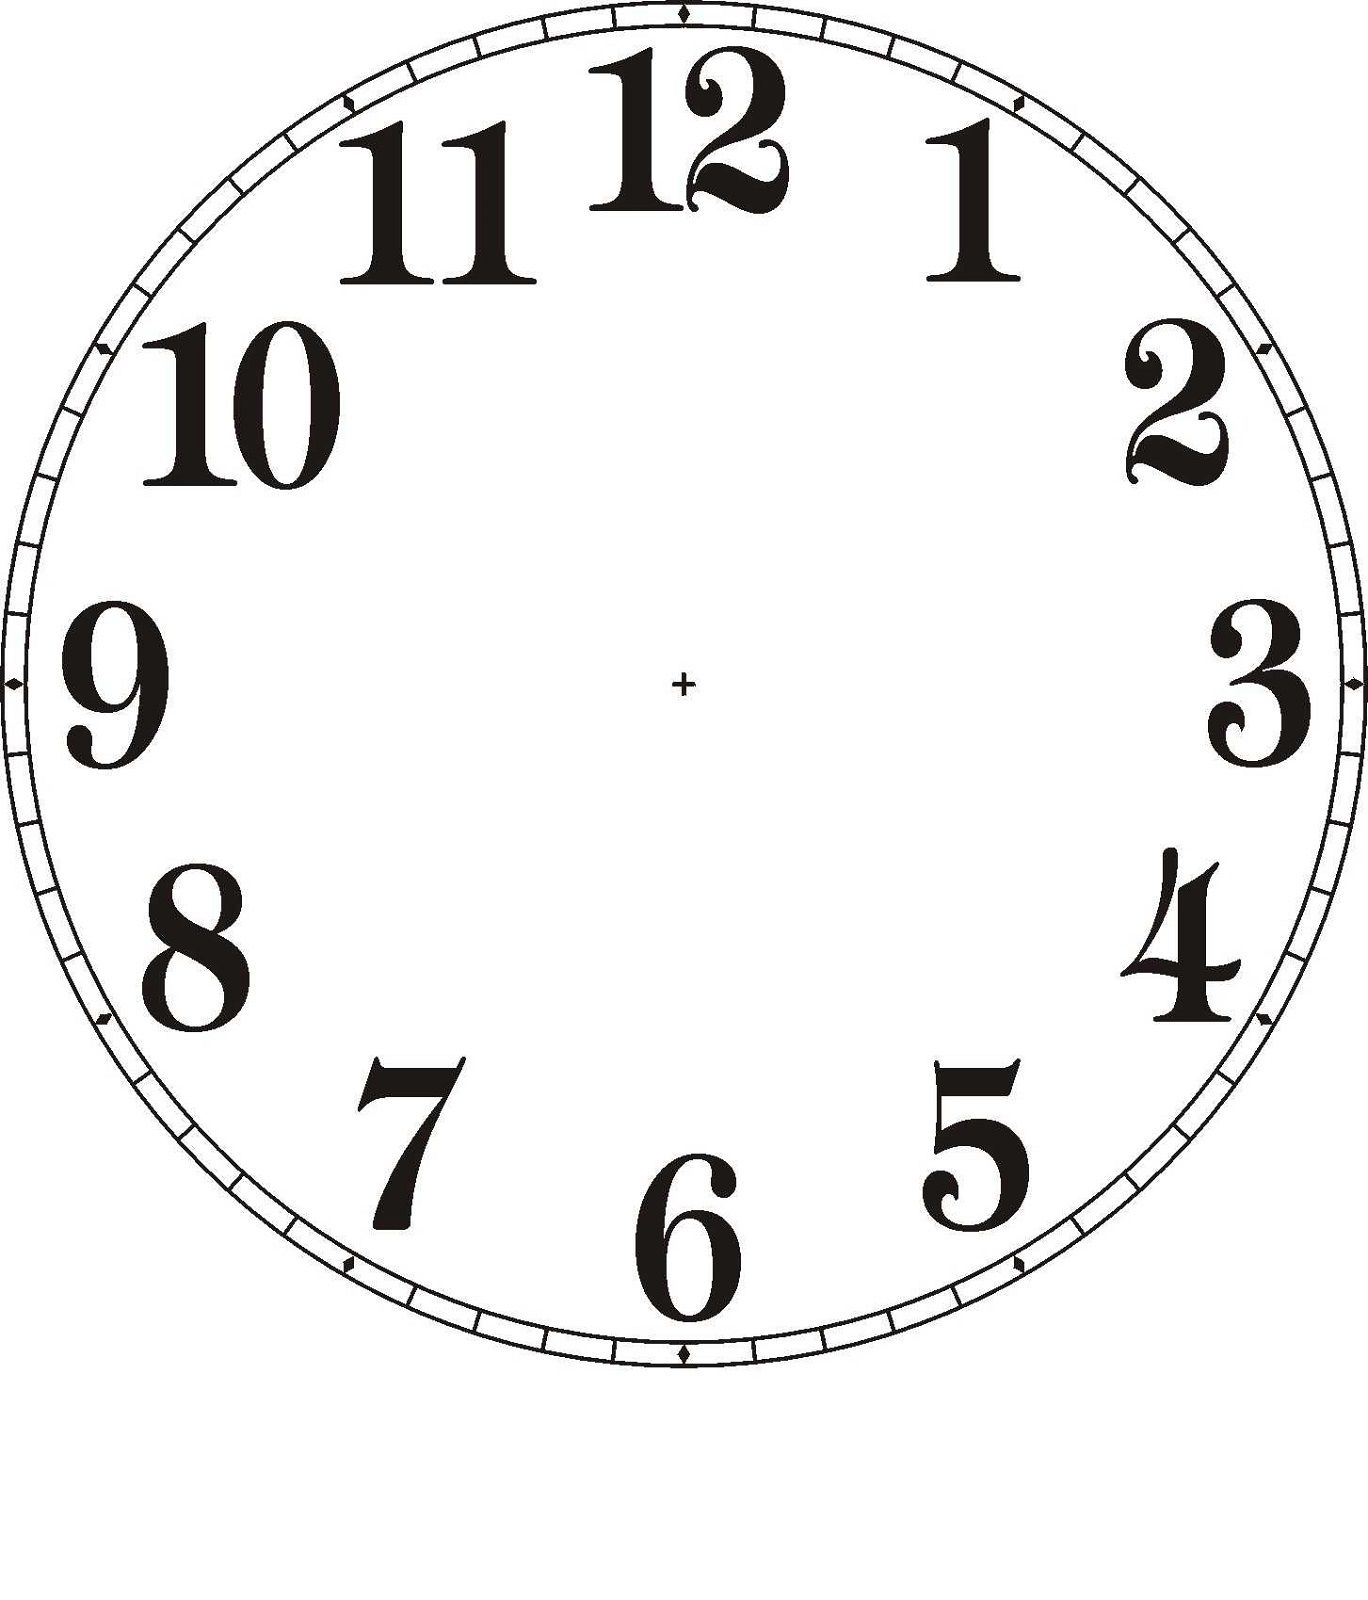 Free Clock Faces Printable Clock Face Printable Clock Template